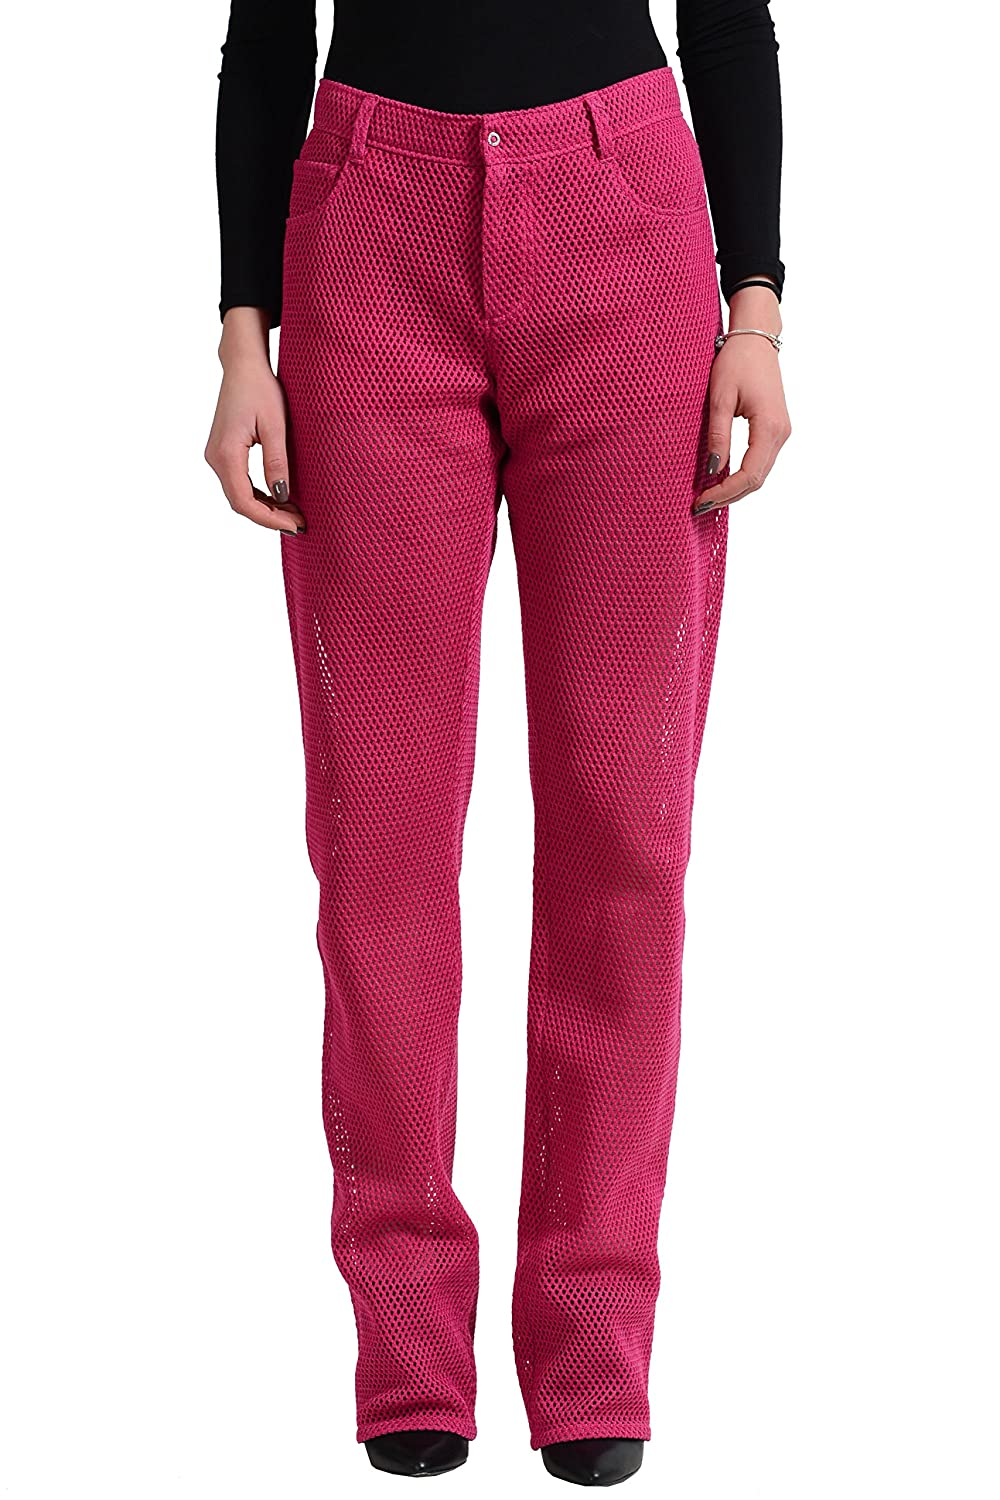 Versace Versus Women's Raspberry See Through Straight Leg Jeans US 2 IT 38